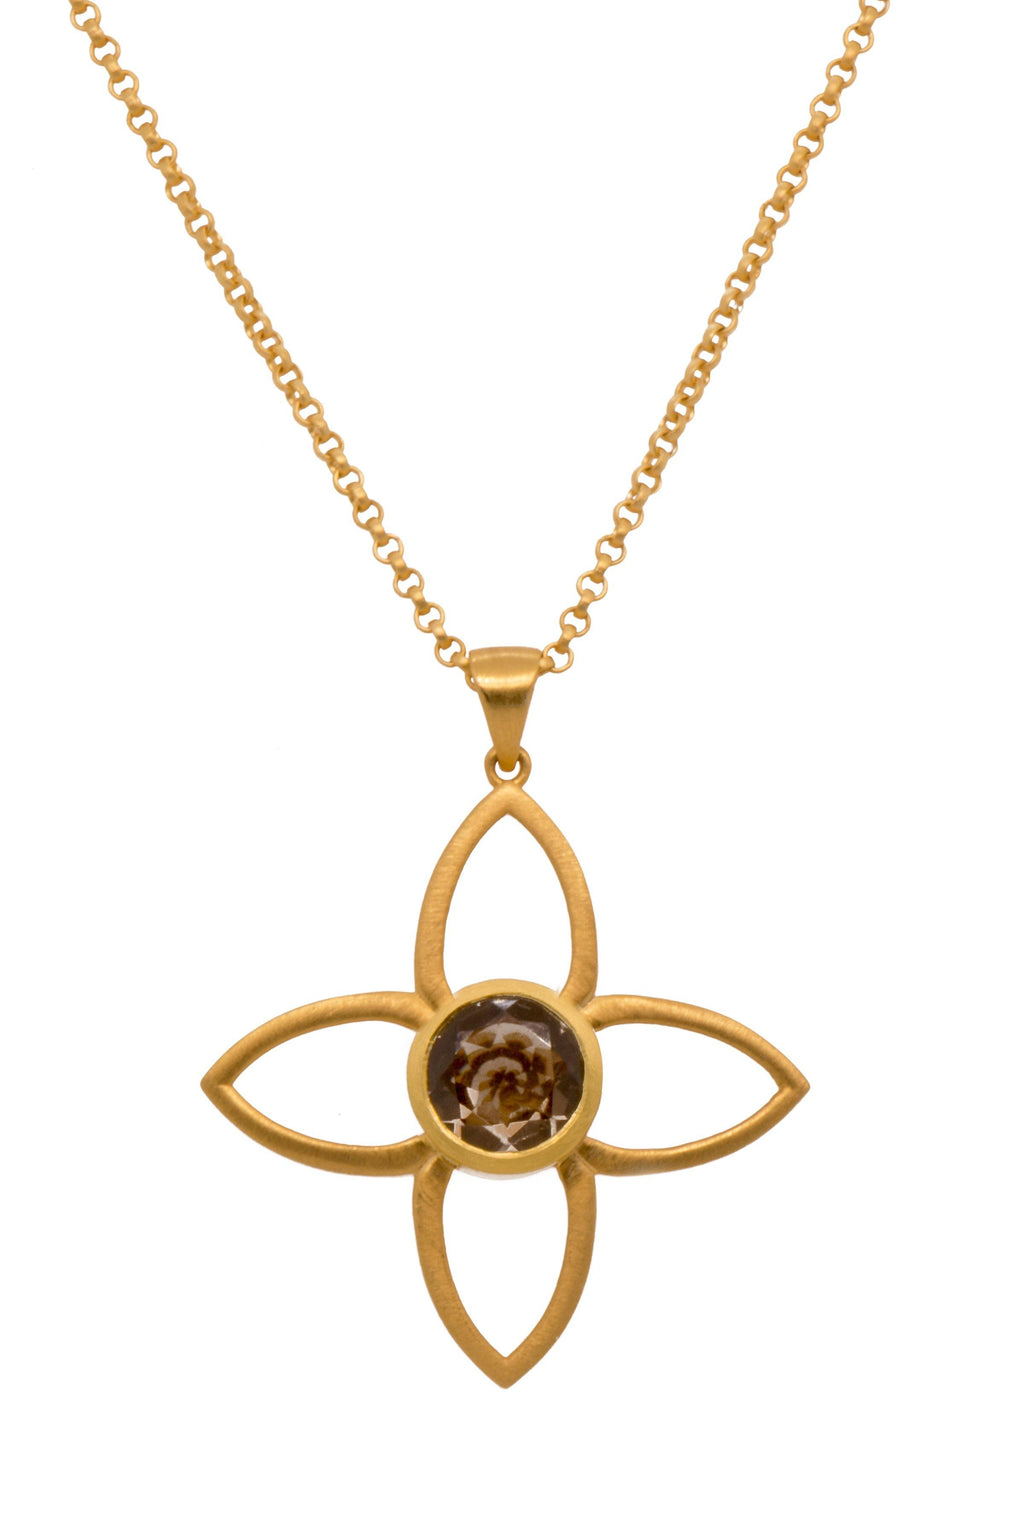 JOYP1SQ PENDANT- JOY FLOWER 40MM SMOKY QUARTZ 24K GOLD VERMEIL